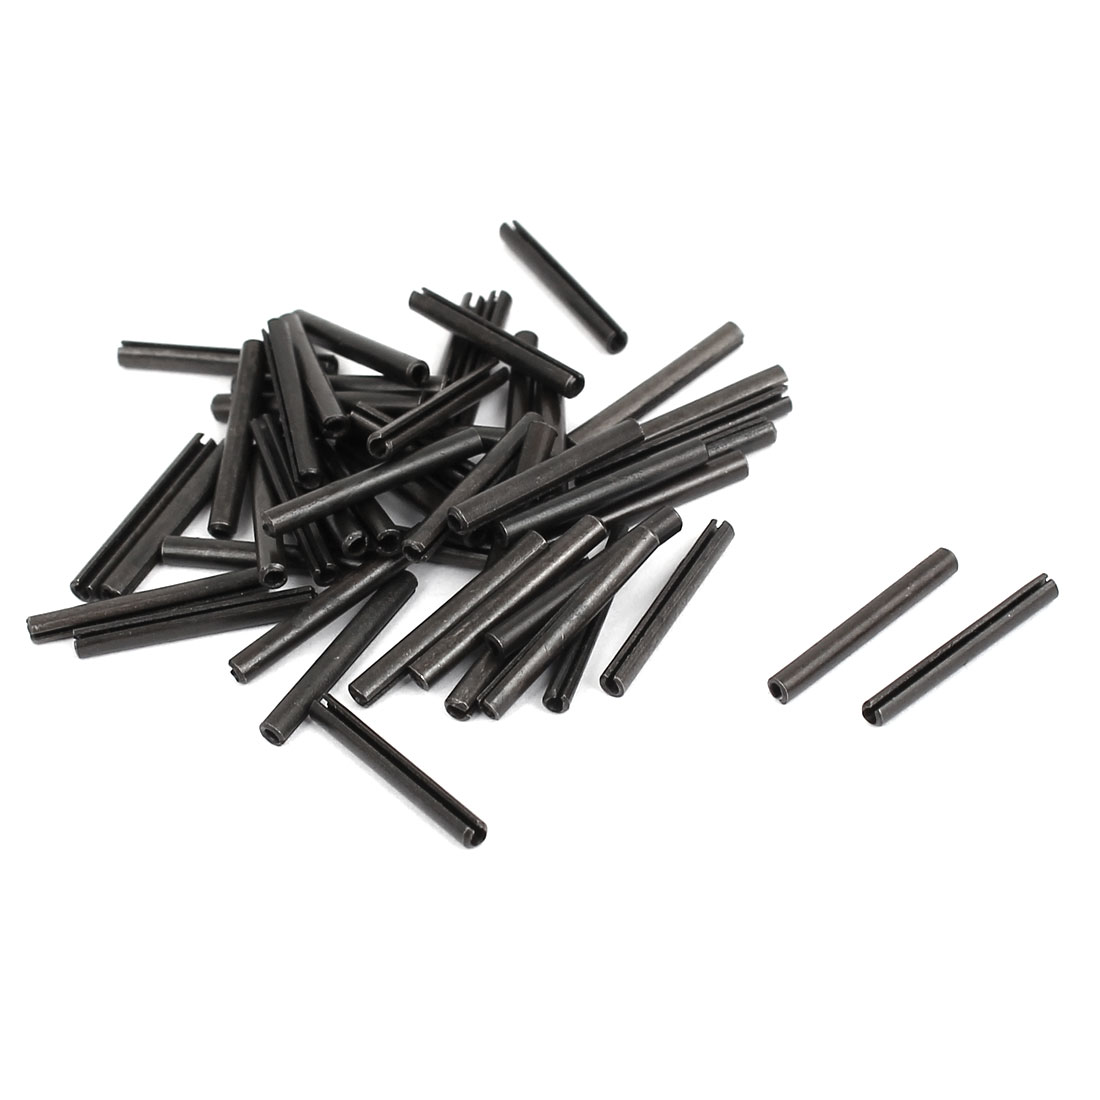 M1.5x14mm Carbon Steel Split Spring Cylindrical Pin Dowel Cotter Pins Hardware 50pcs